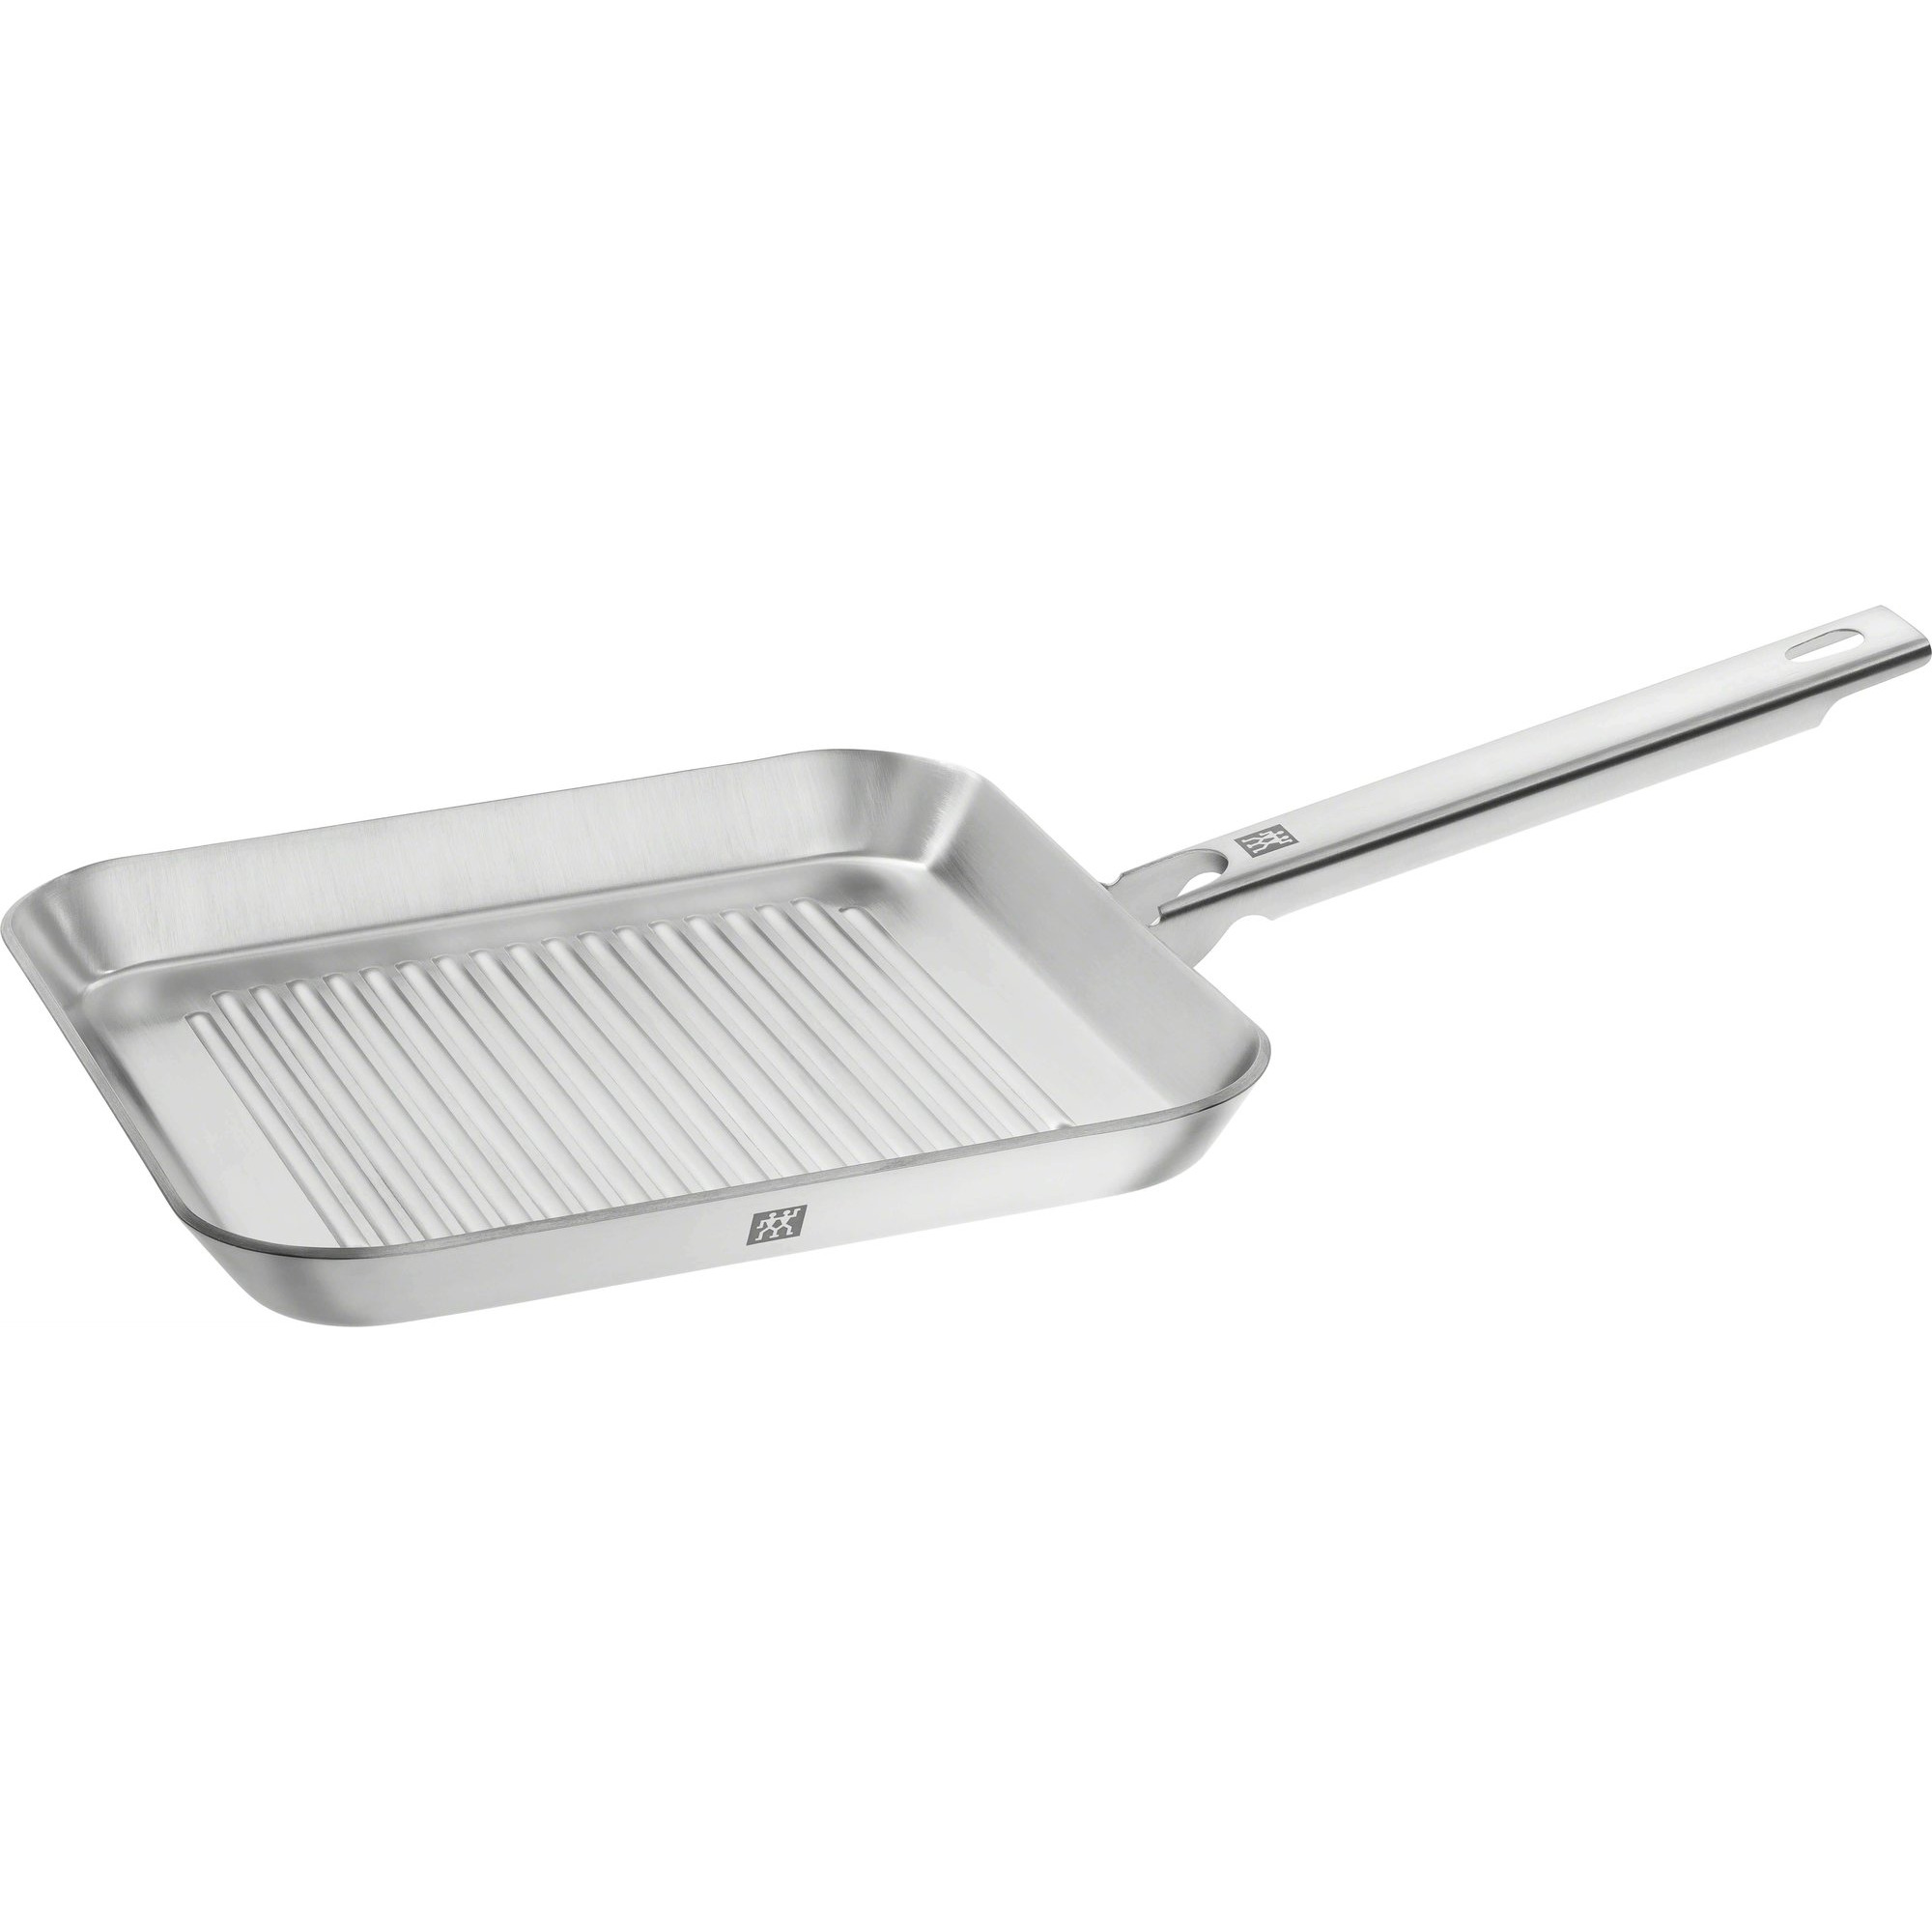 Zwilling Plus Grillpanna 24×24 cm